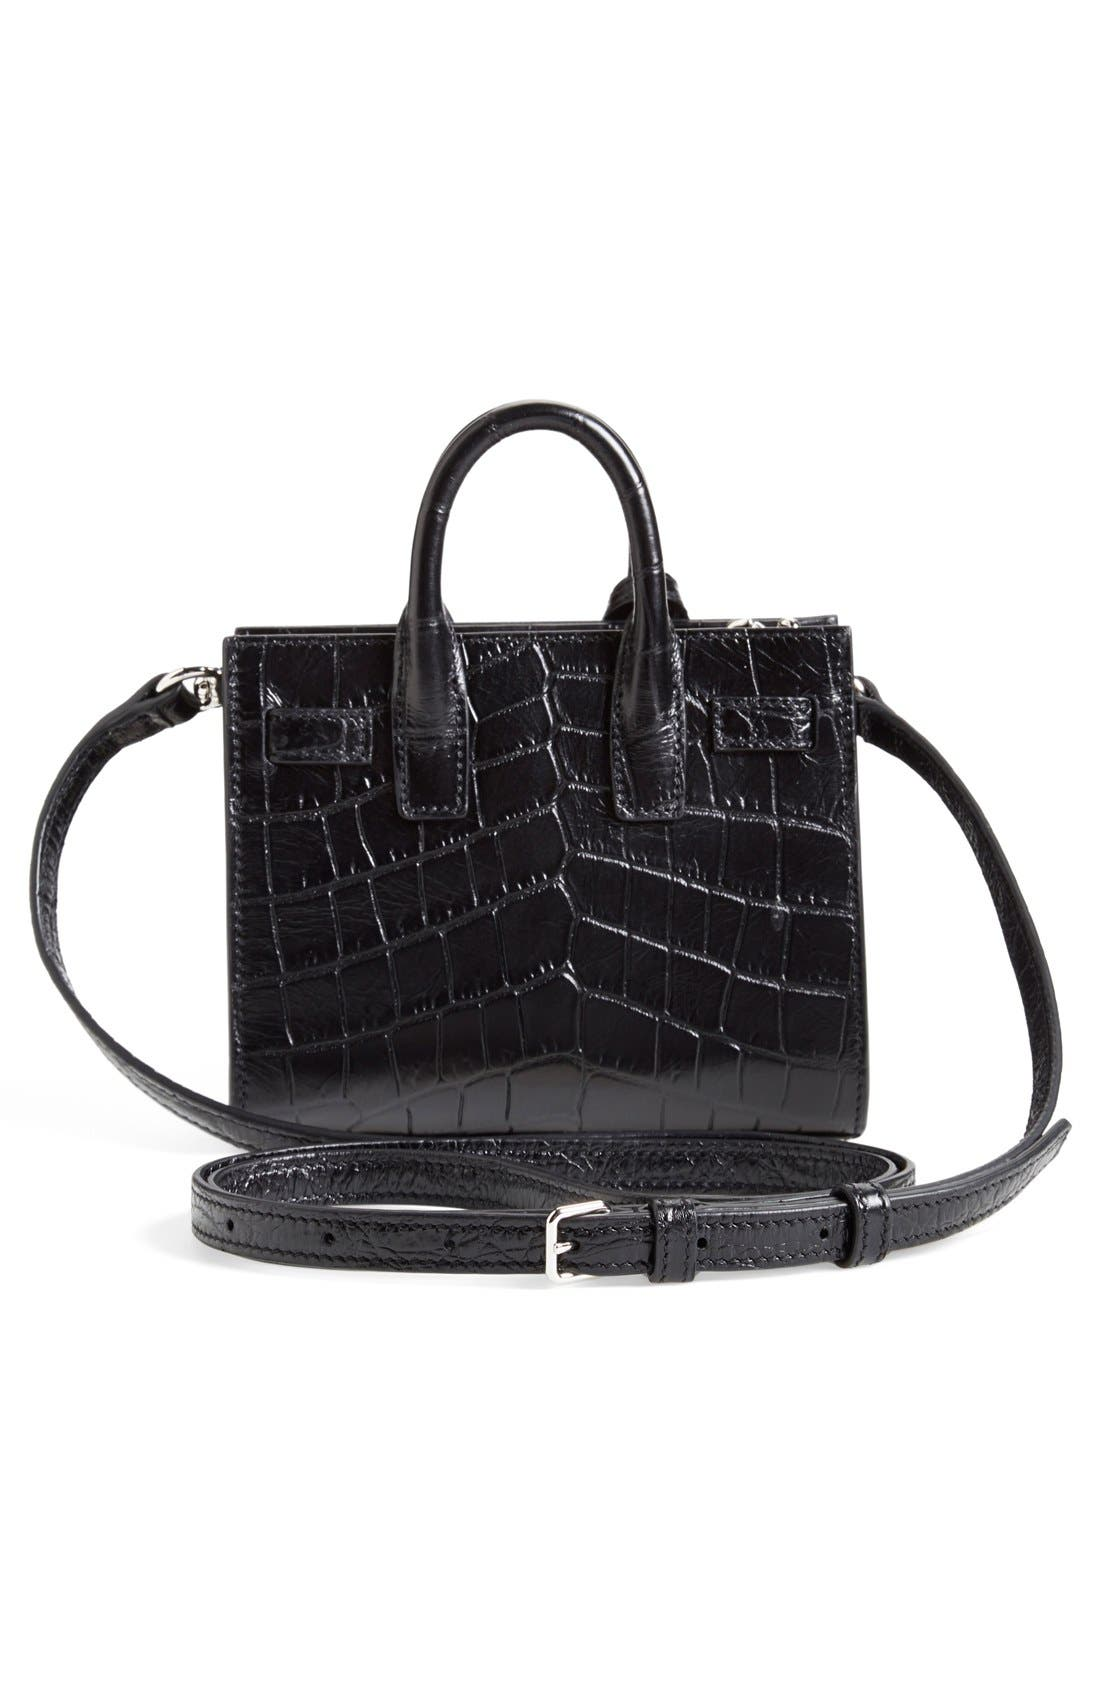 Alternate Image 3  - Saint Laurent 'Toy Sac de Jour' Croc Embossed Calfskin Leather Tote (Extra Small)